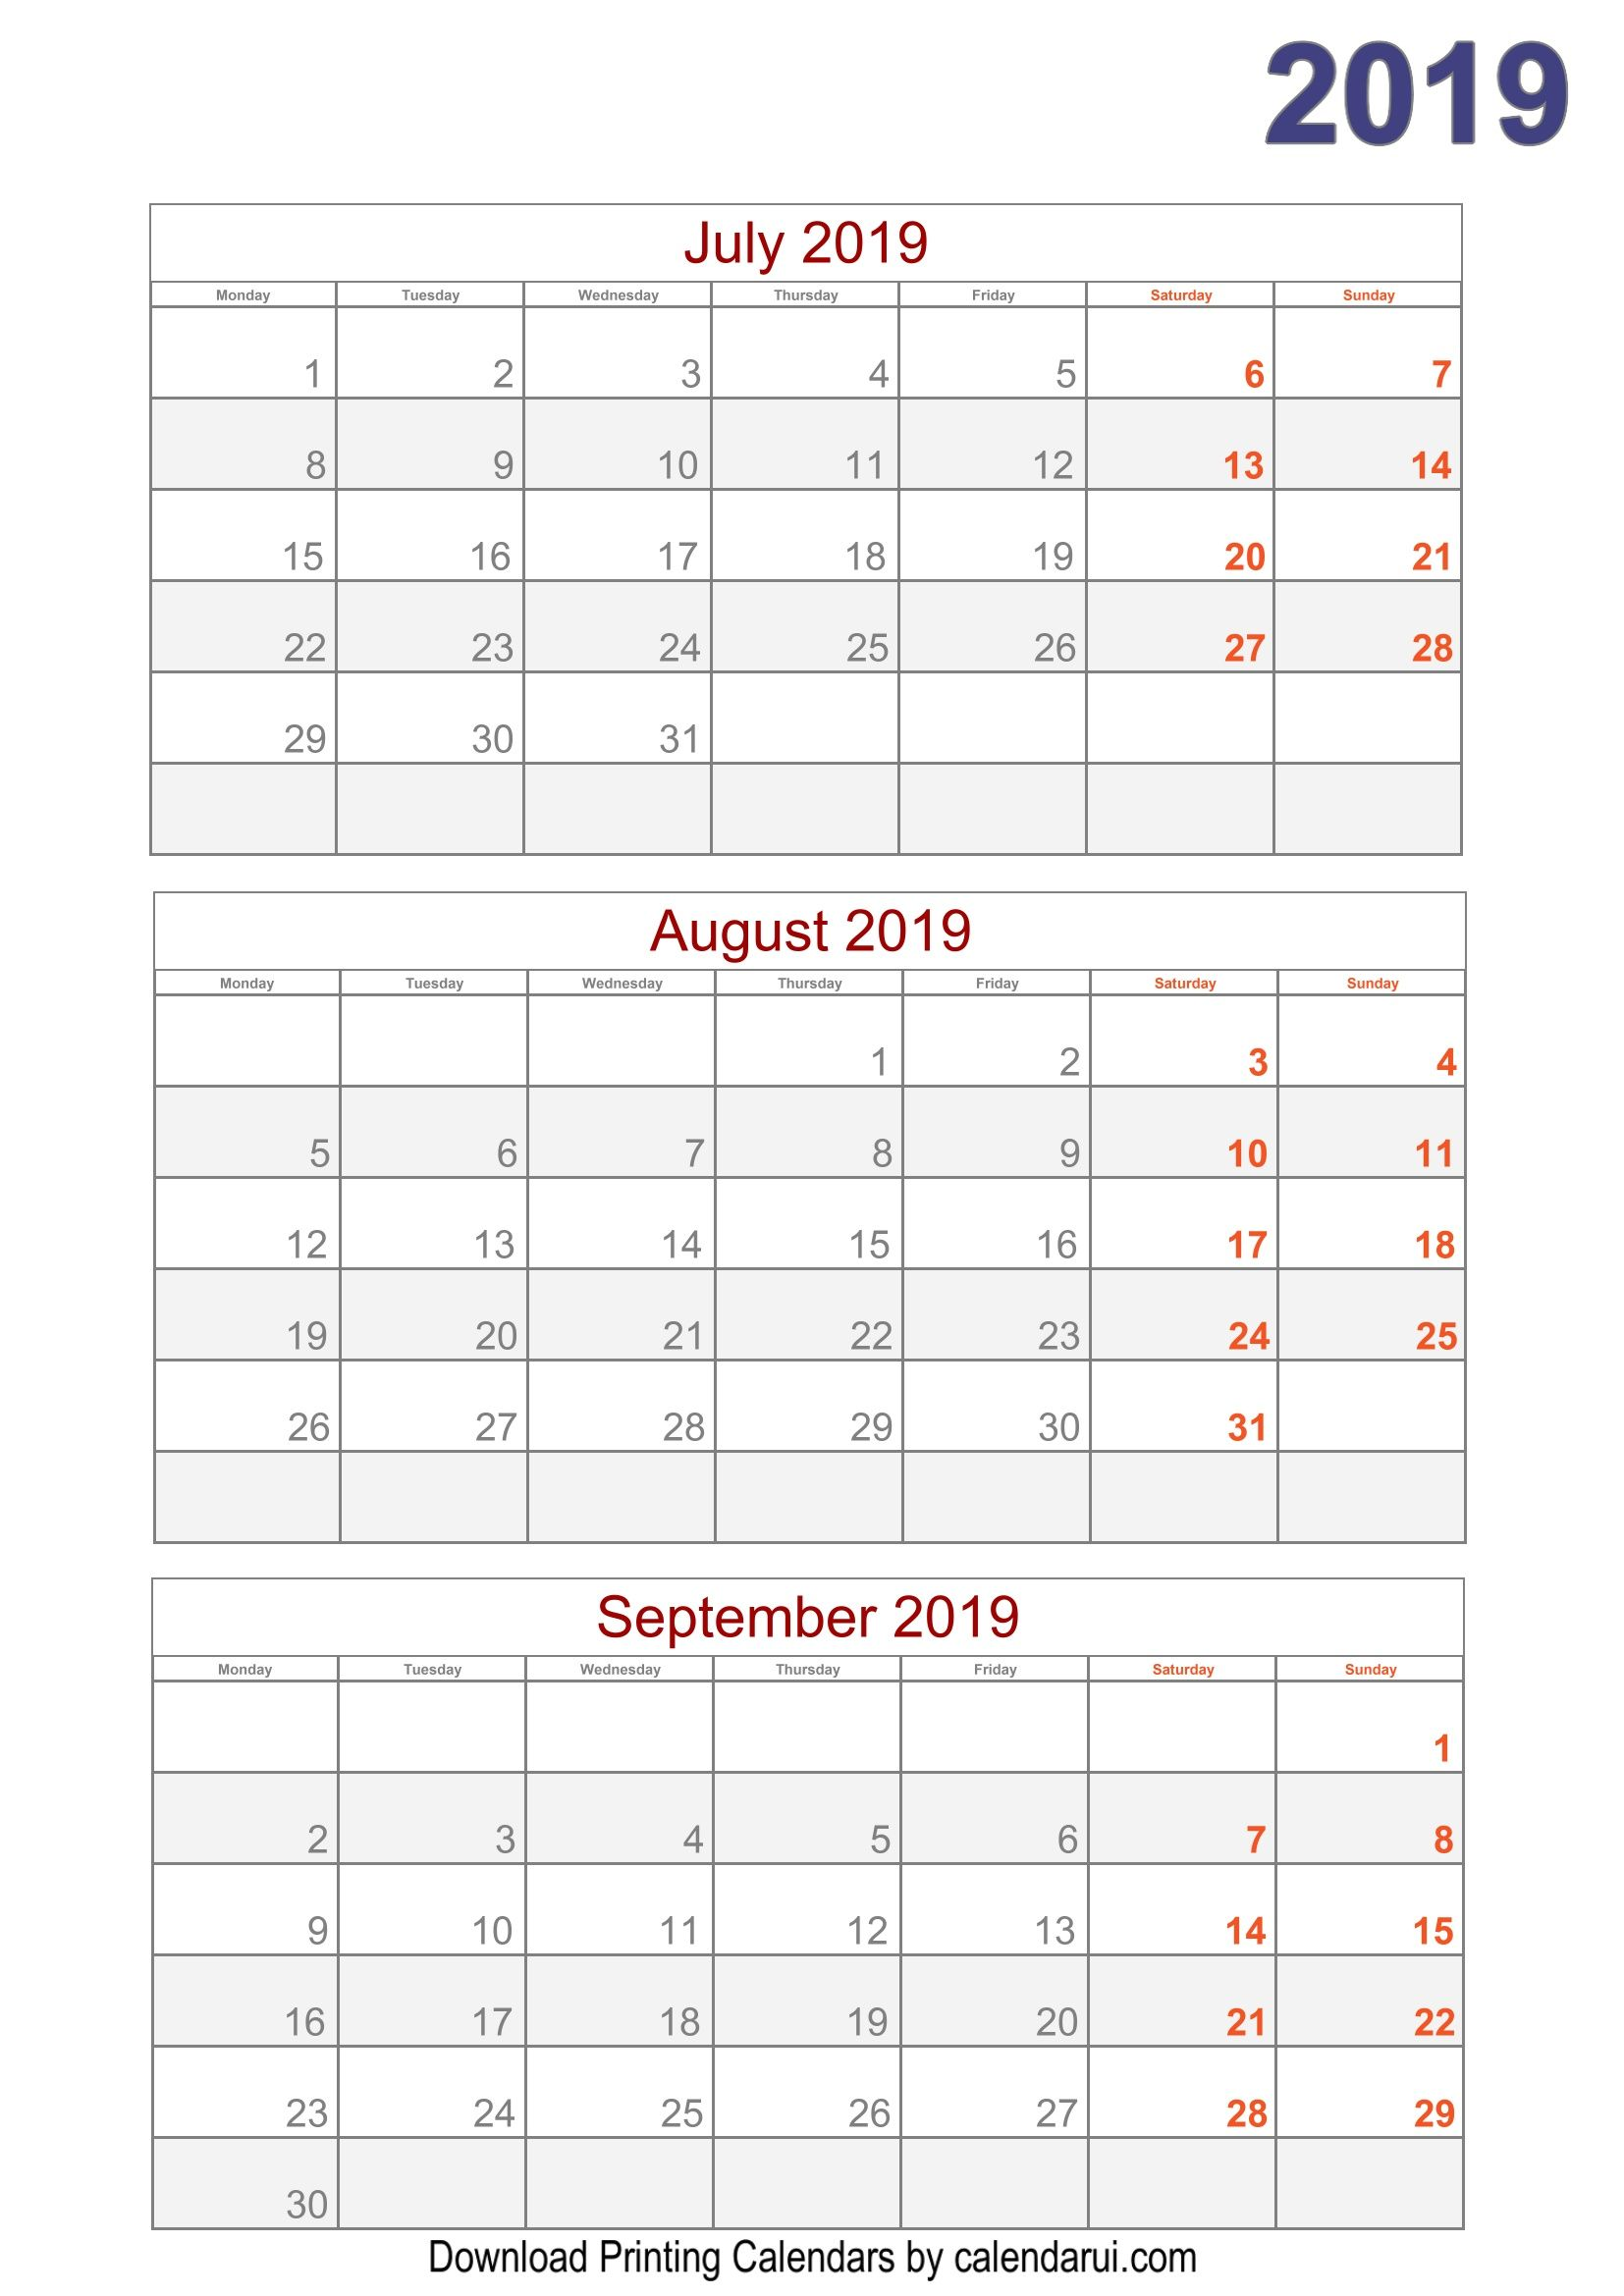 Quarterly Calendar Template 2019 Download 2019 Quarterly Calendar Printable For Free | Calendar